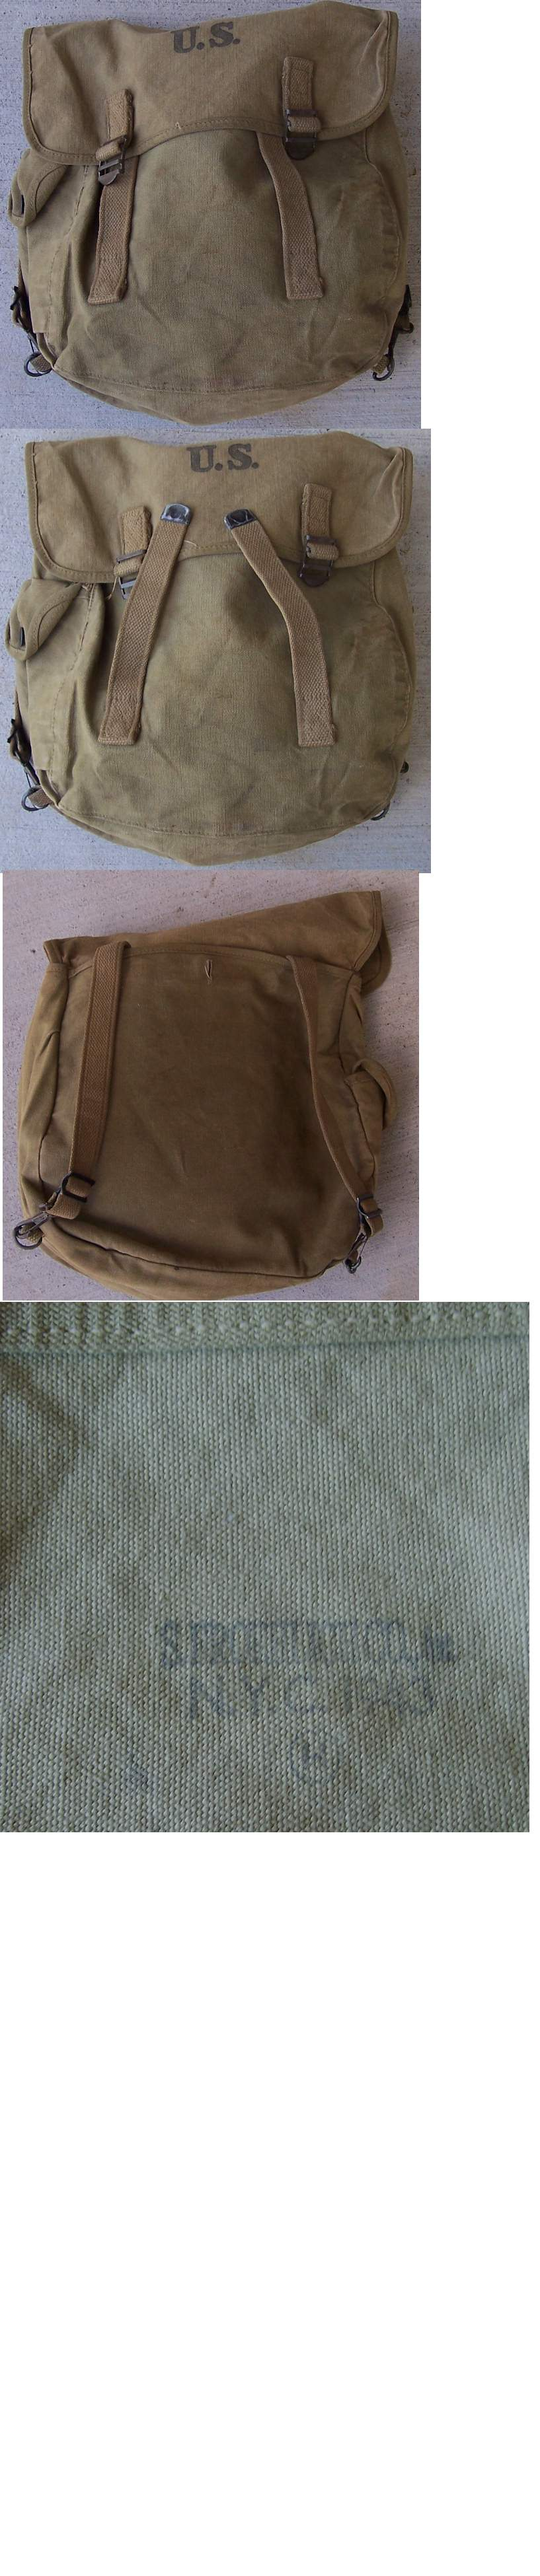 US Canvas Field ,Bag by S. Froehlich Co NYC 1943